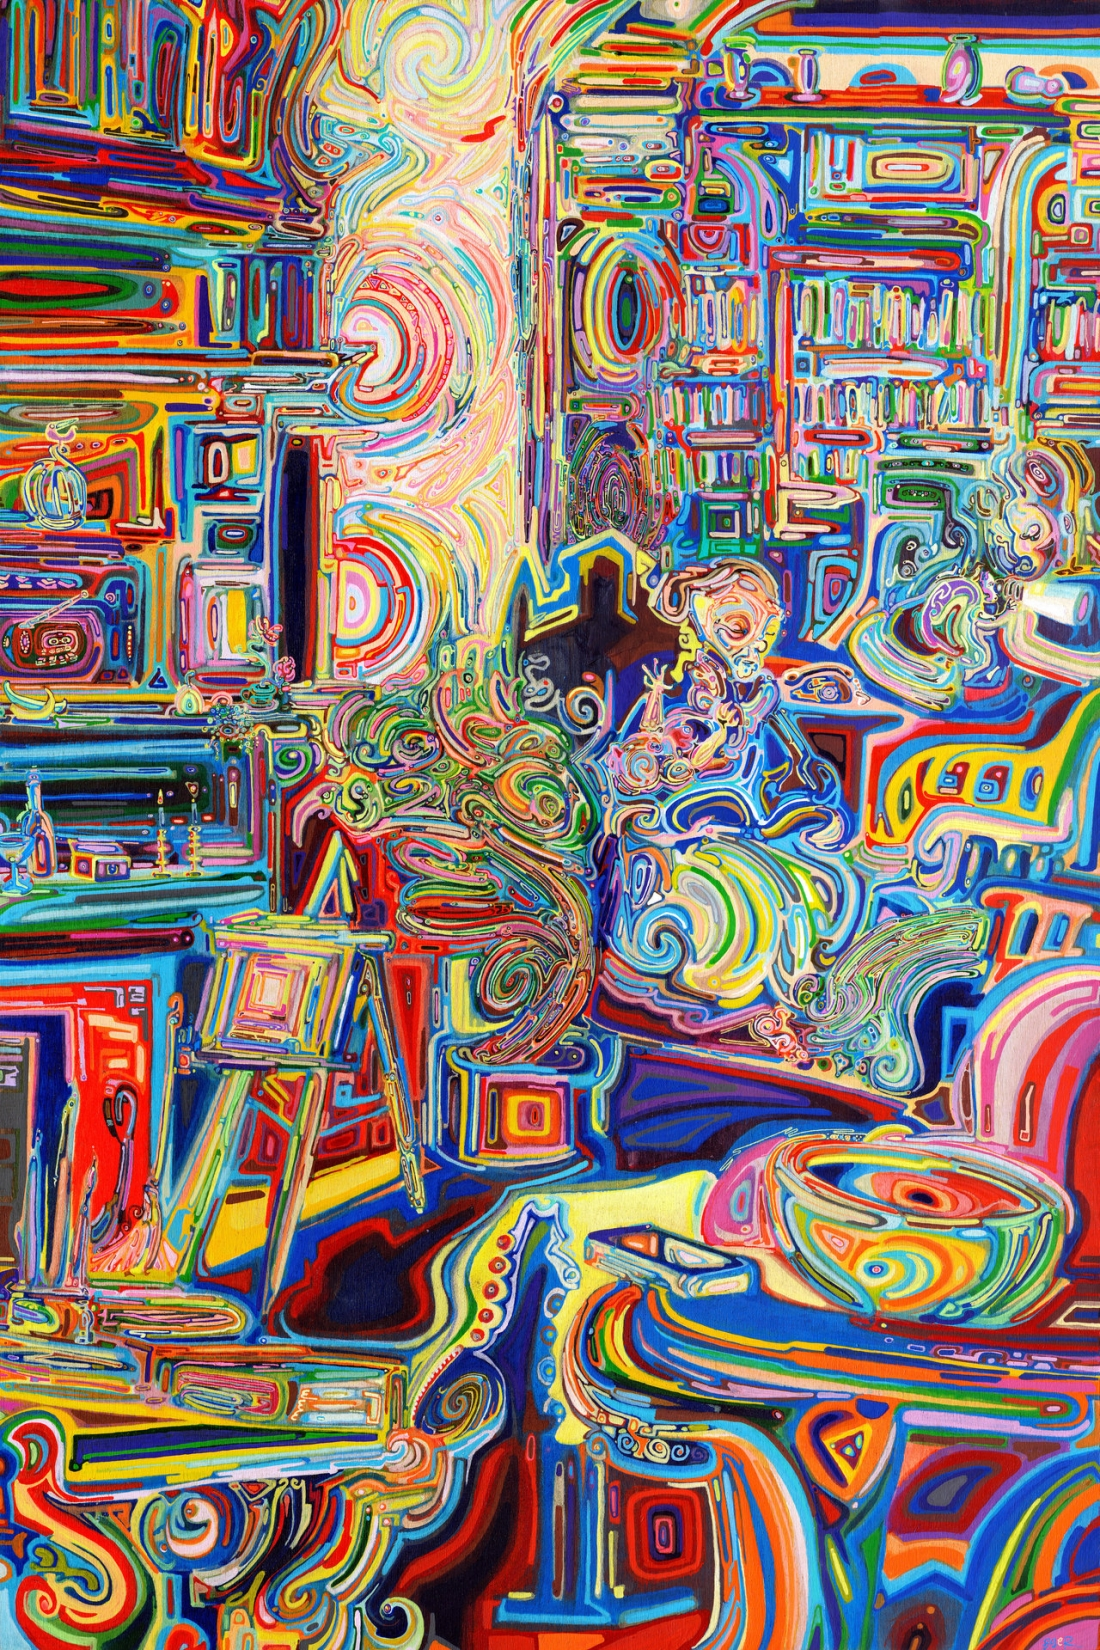 Faux Fauvism: Artist invents new technique to create a kaleidoscope of colourful paintings